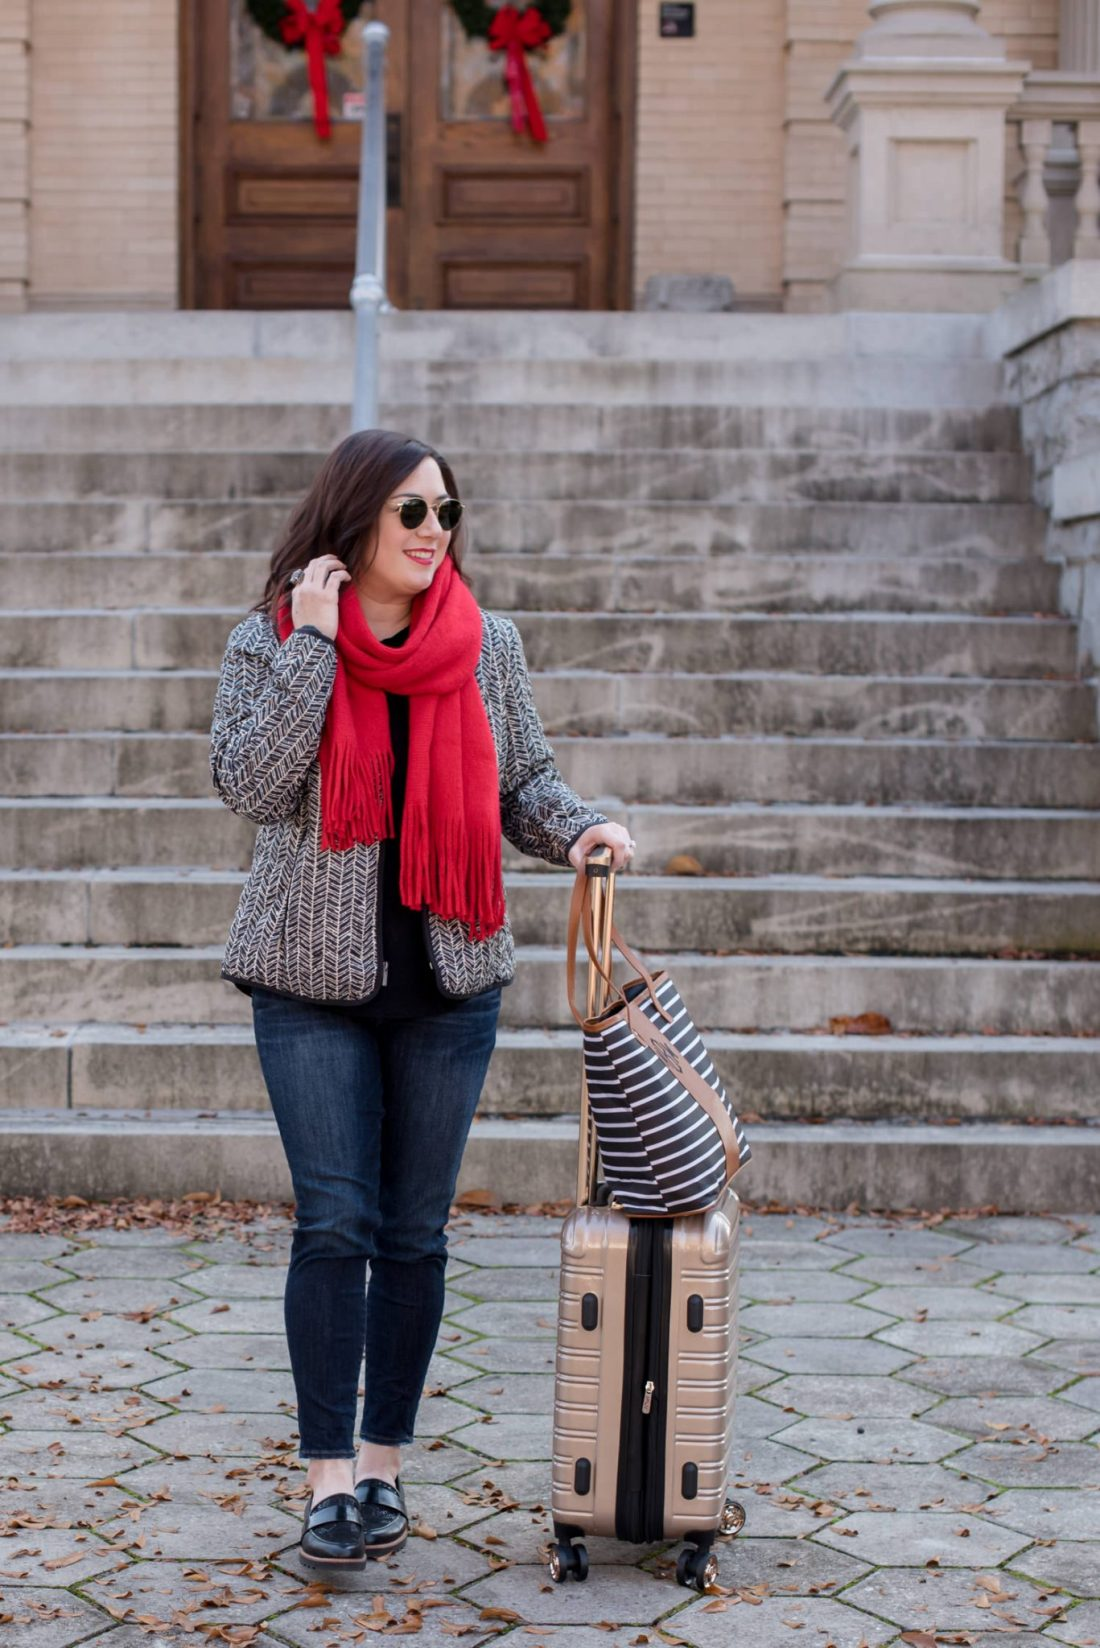 15 Great Travel Gift Ideas for the Stylish Traveler featured by top Atlanta life and style blogger Miss Molly Moon